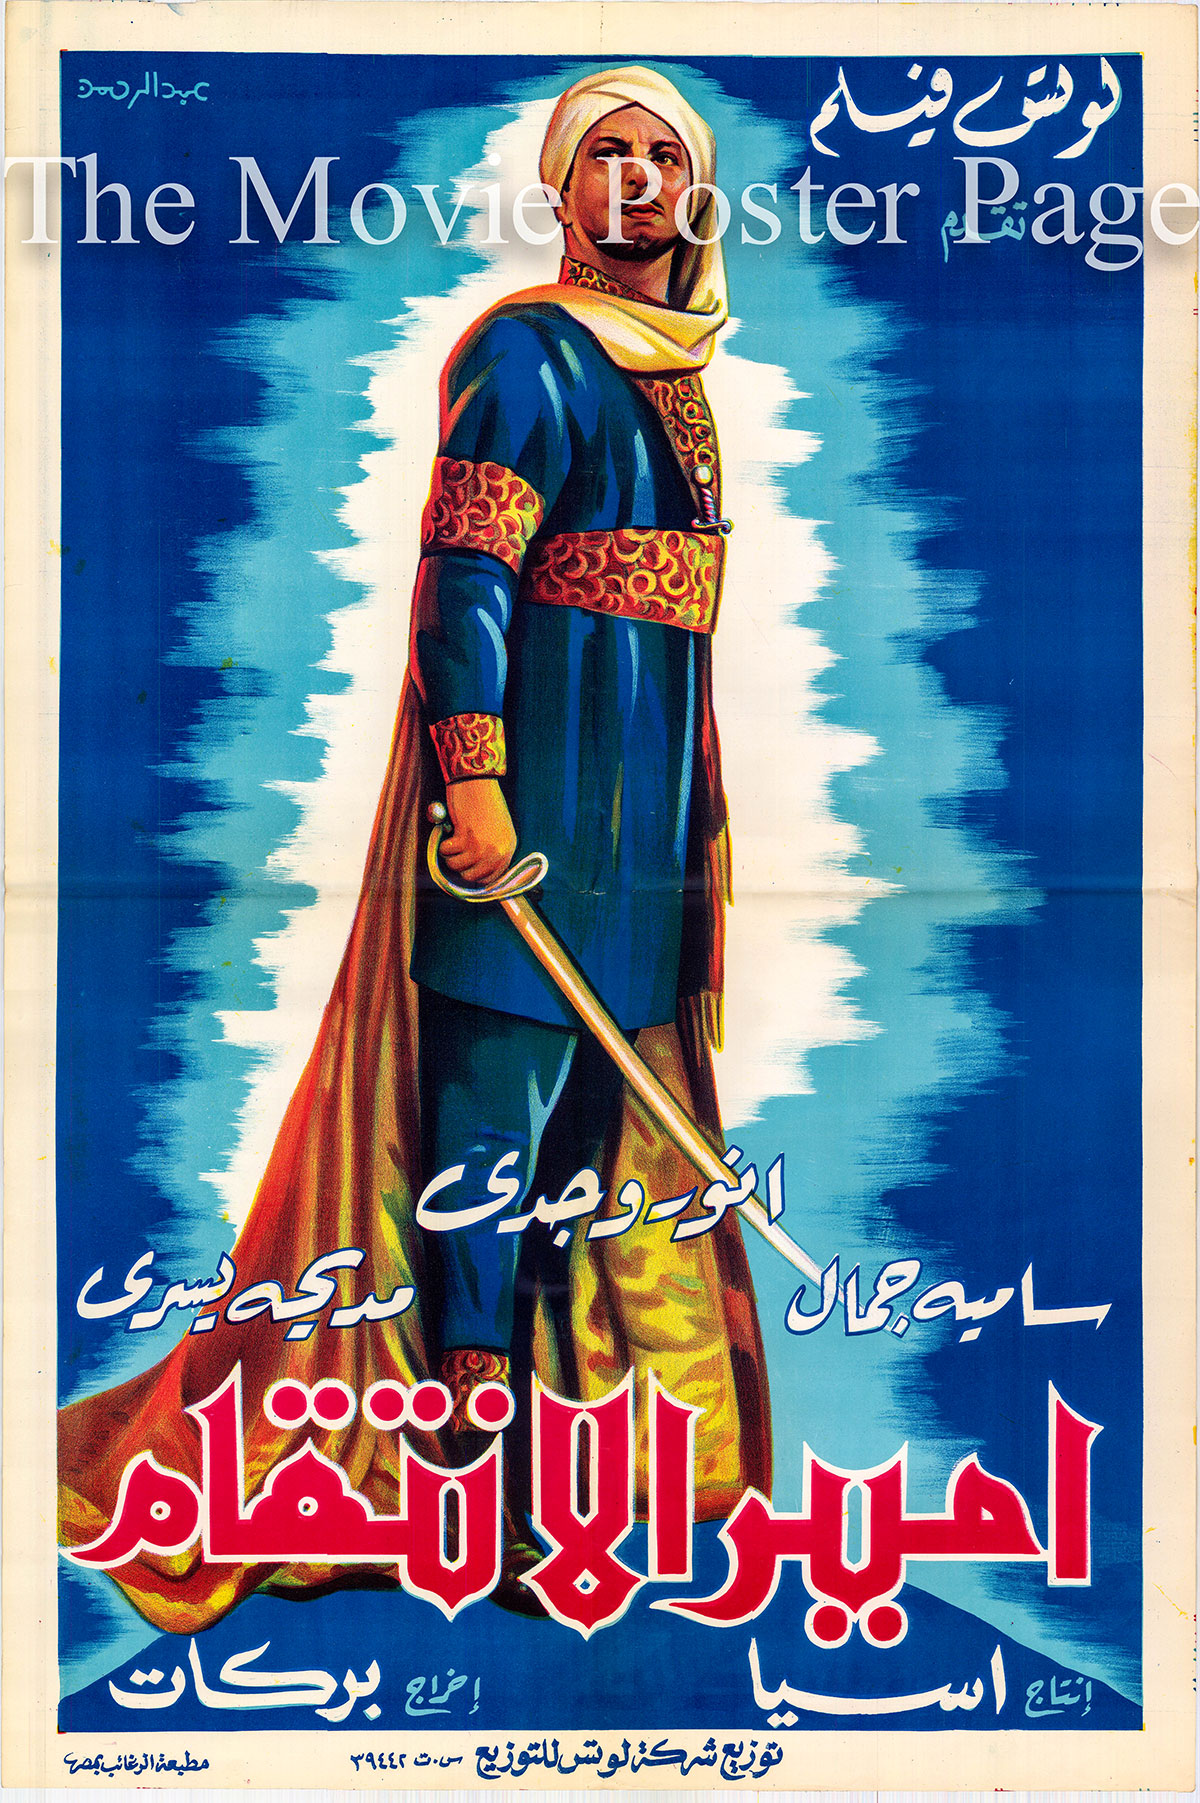 Pictured is an Egyptian promotional poster for the 1951 Henry Barakat film The Count of Monte Cristo starring Anwar Wagdi.